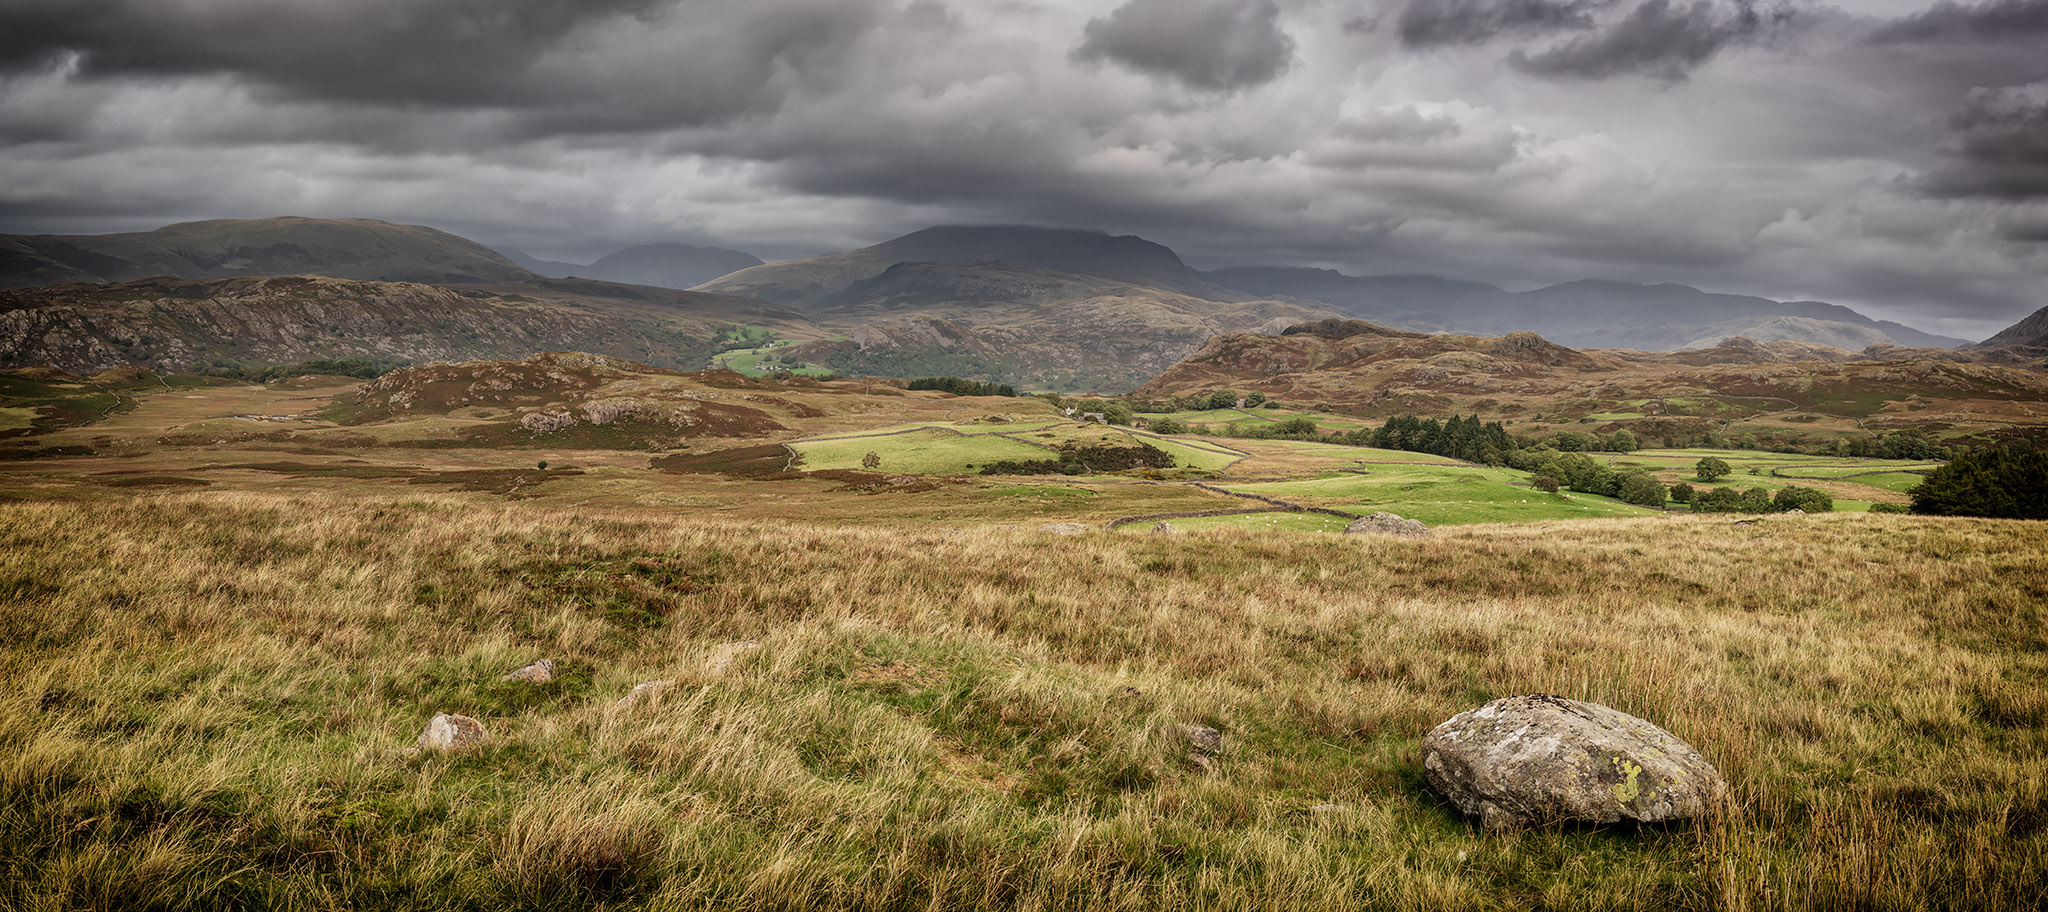 Monday - a panoramic composition from Birker Fell